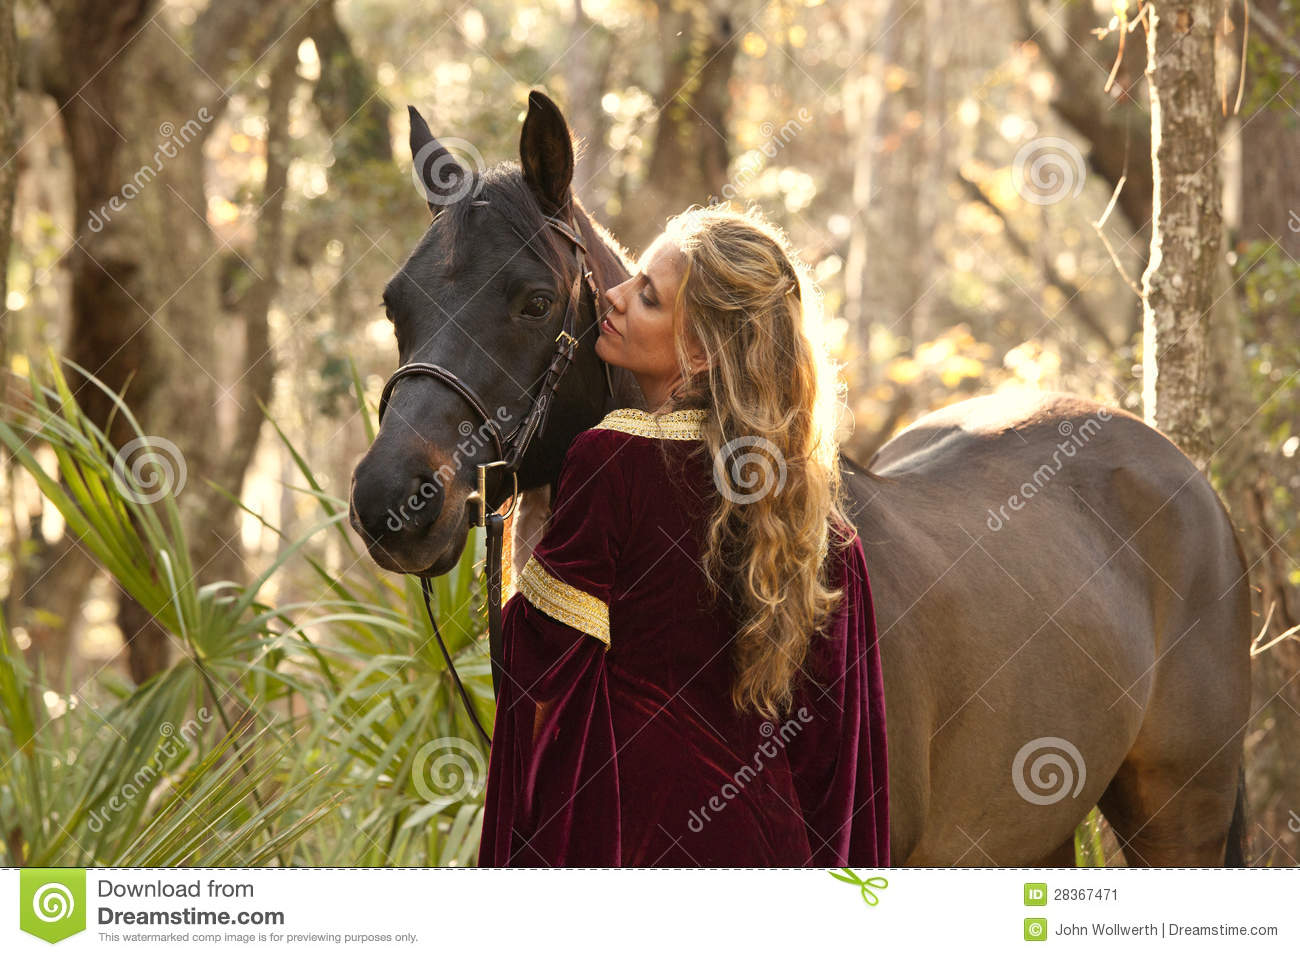 Woman In Medieval Dress With Horse Stock Image - Image ...